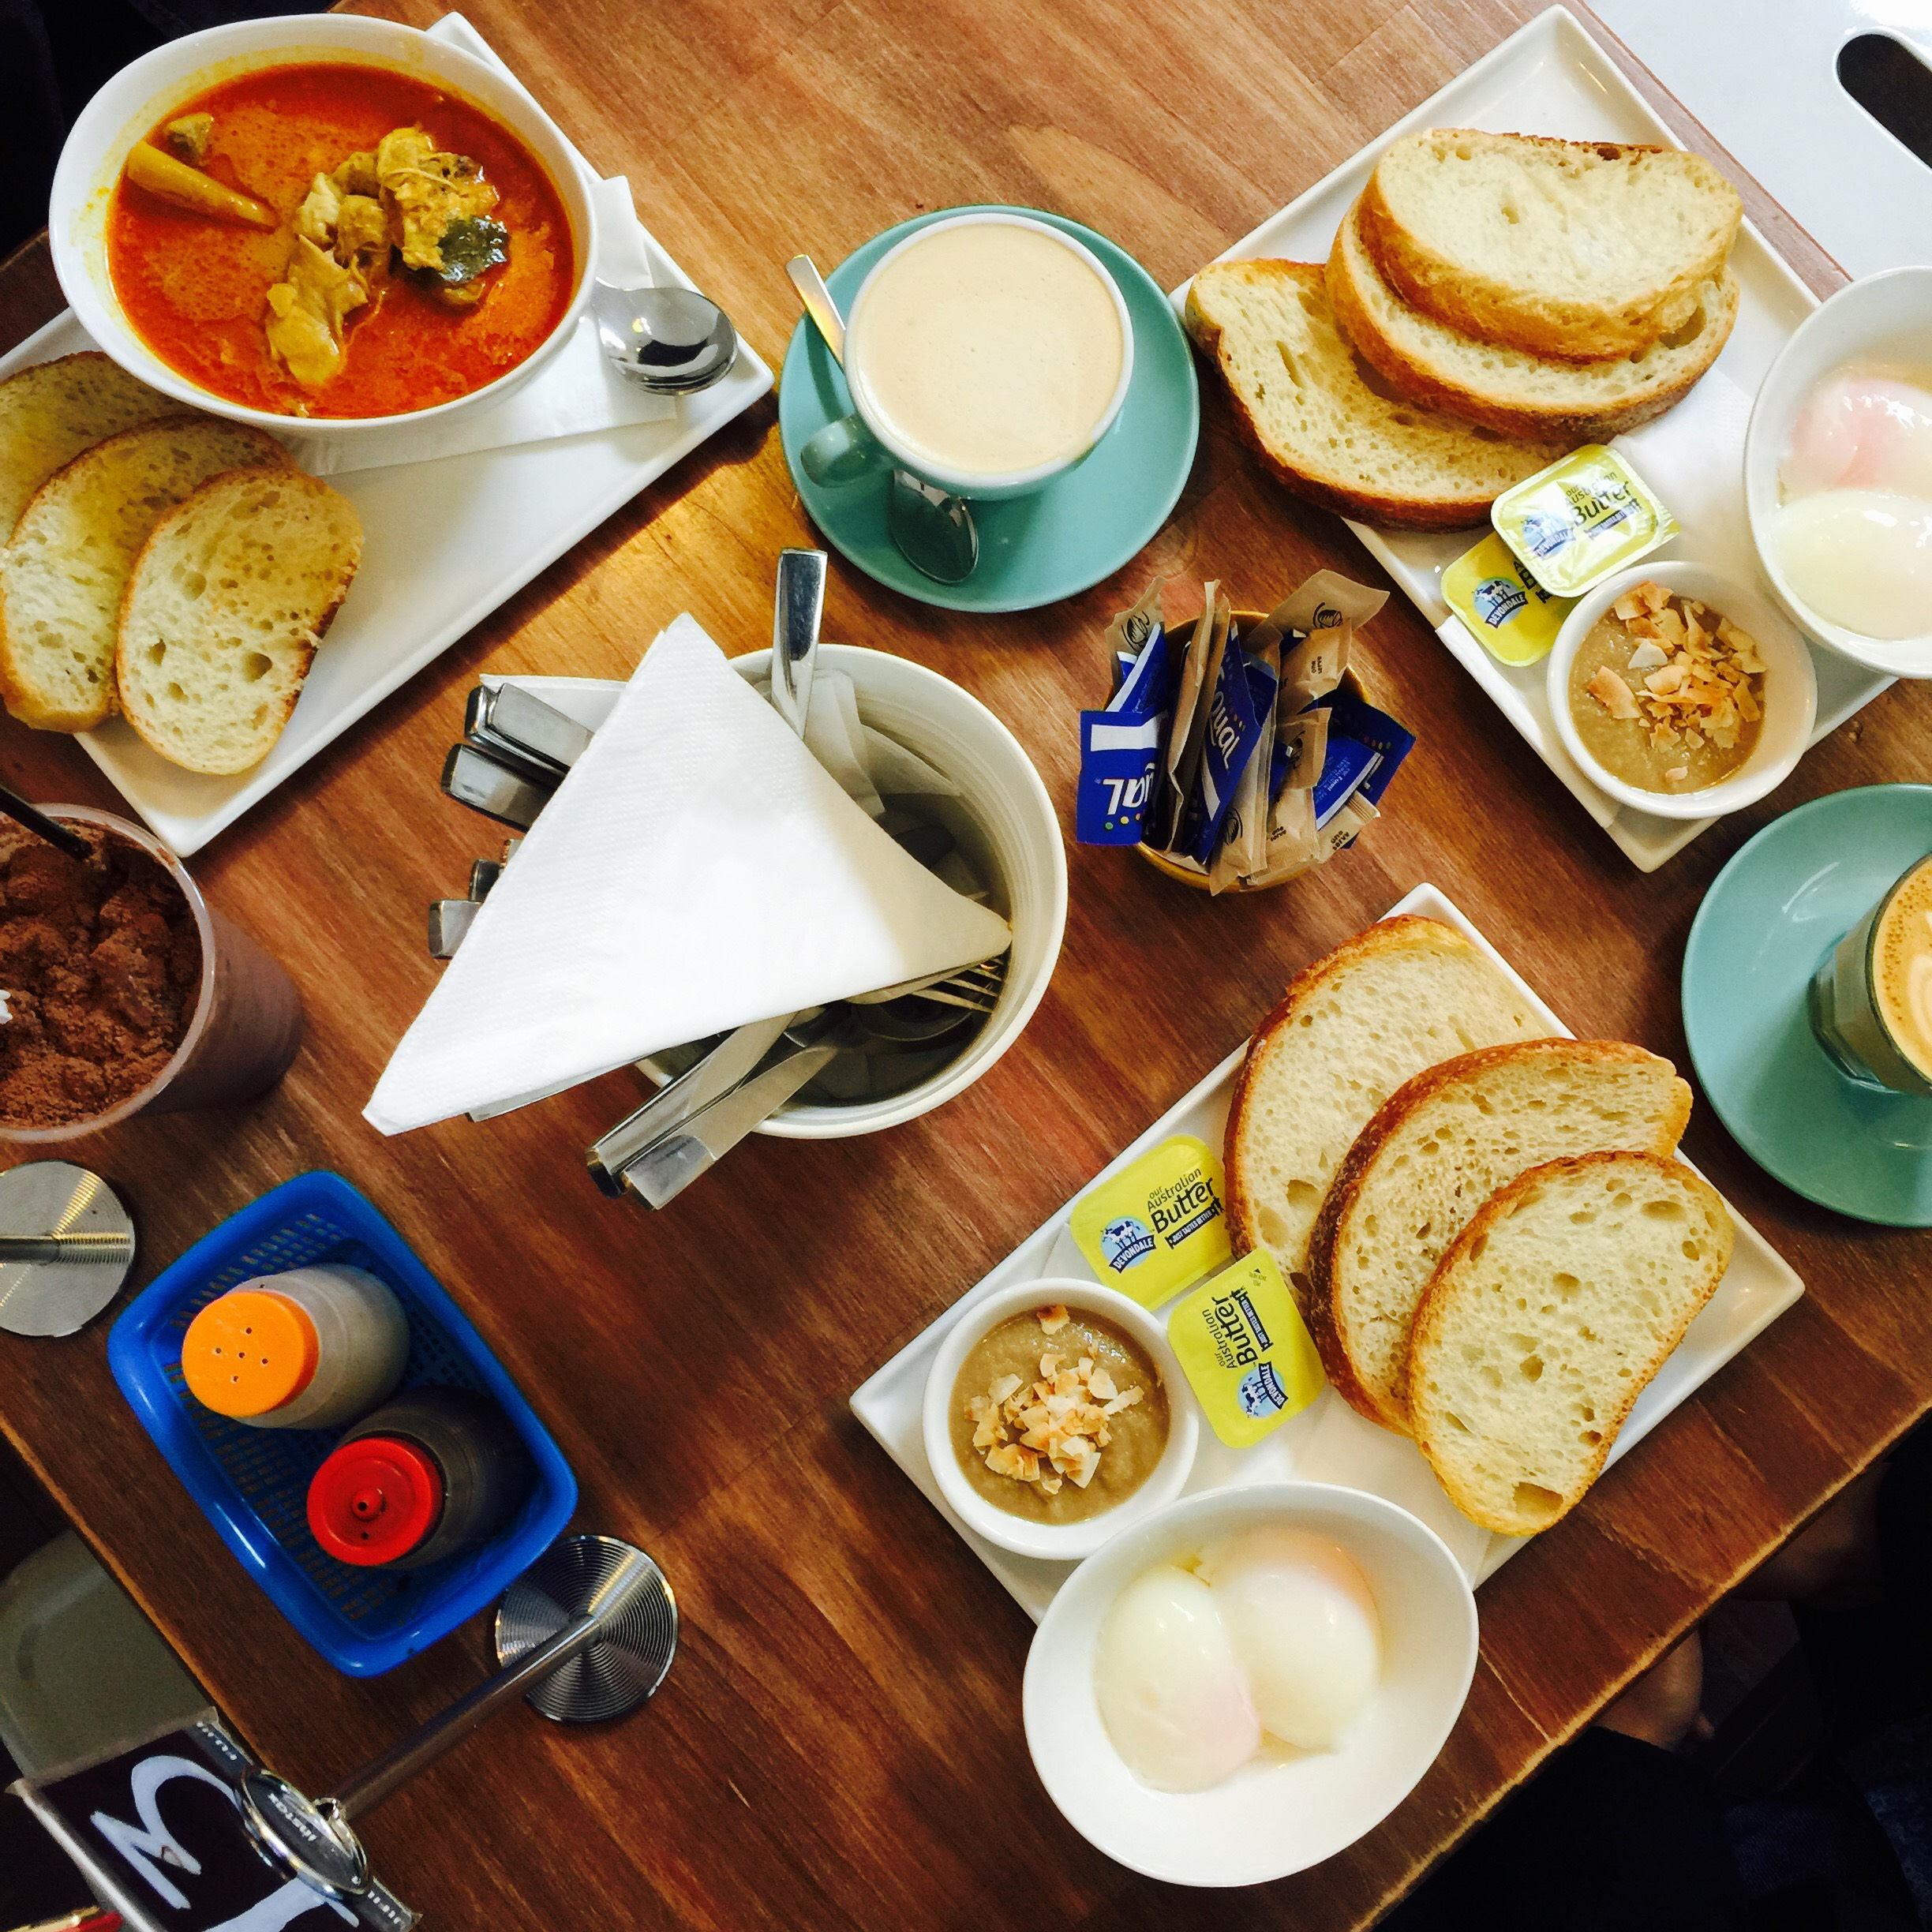 Mum's curry and two Singaporean breakfast